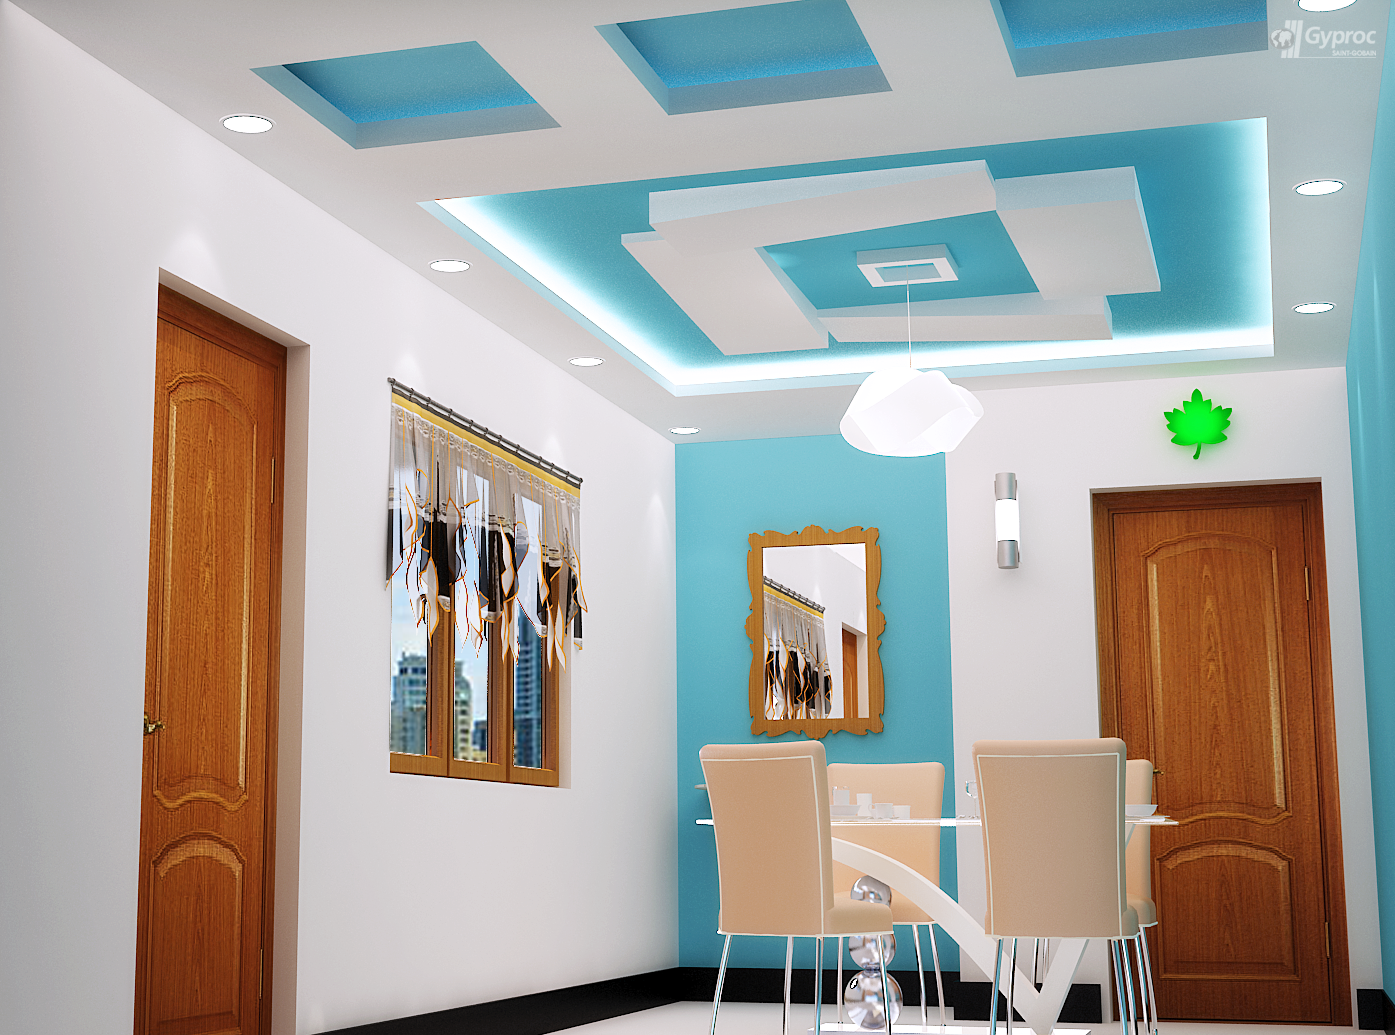 False ceiling designs for other rooms saint gobain for Latest room design